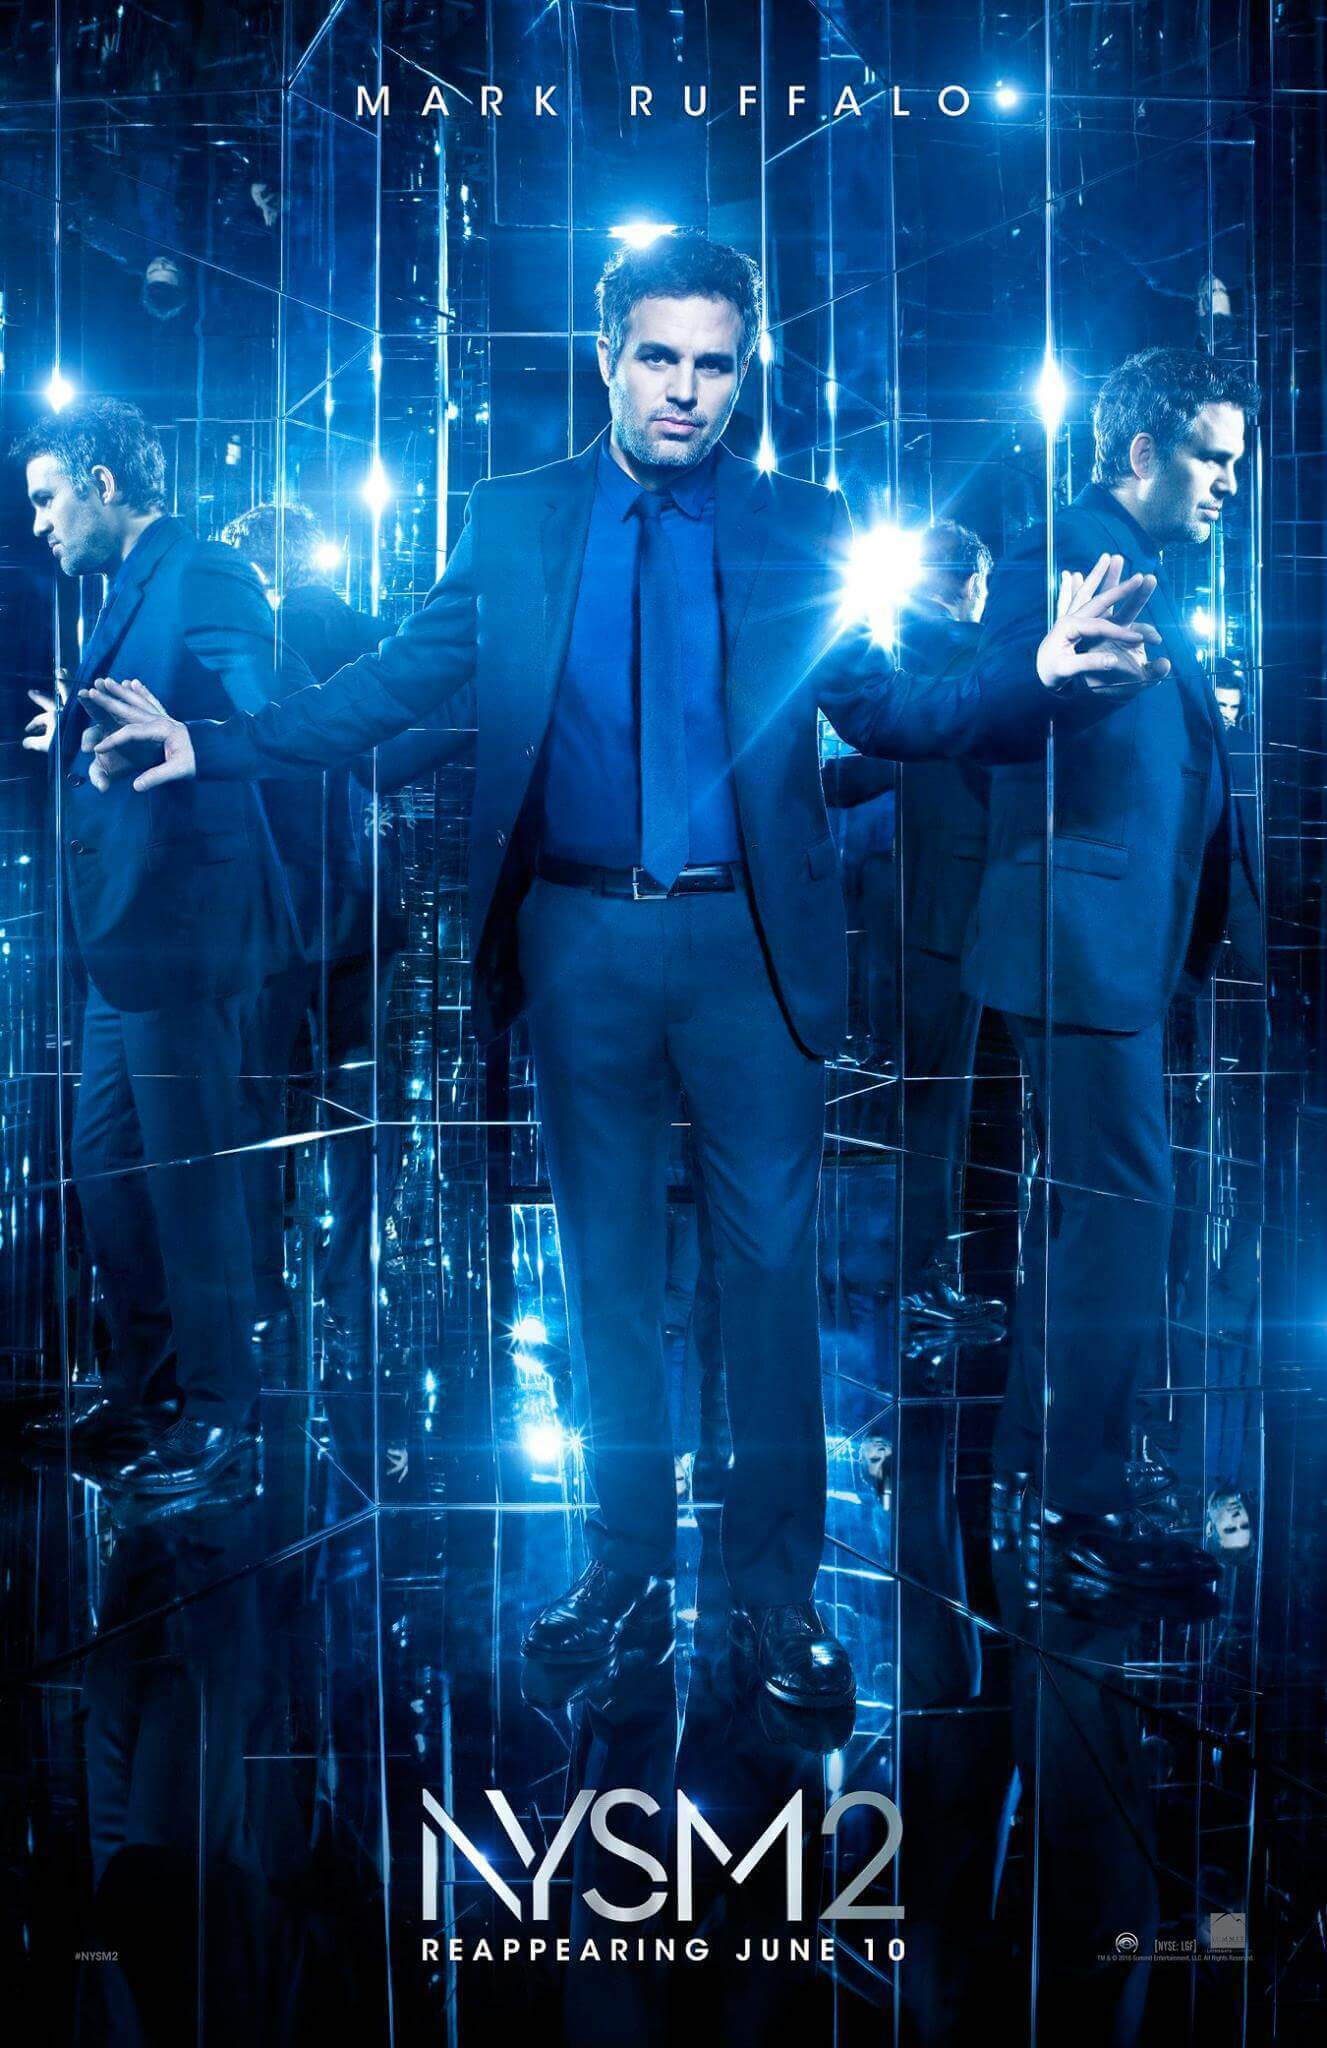 Now You See Me 2 Character Posters Released - FANdemonium ... Now You See Me Character Posters